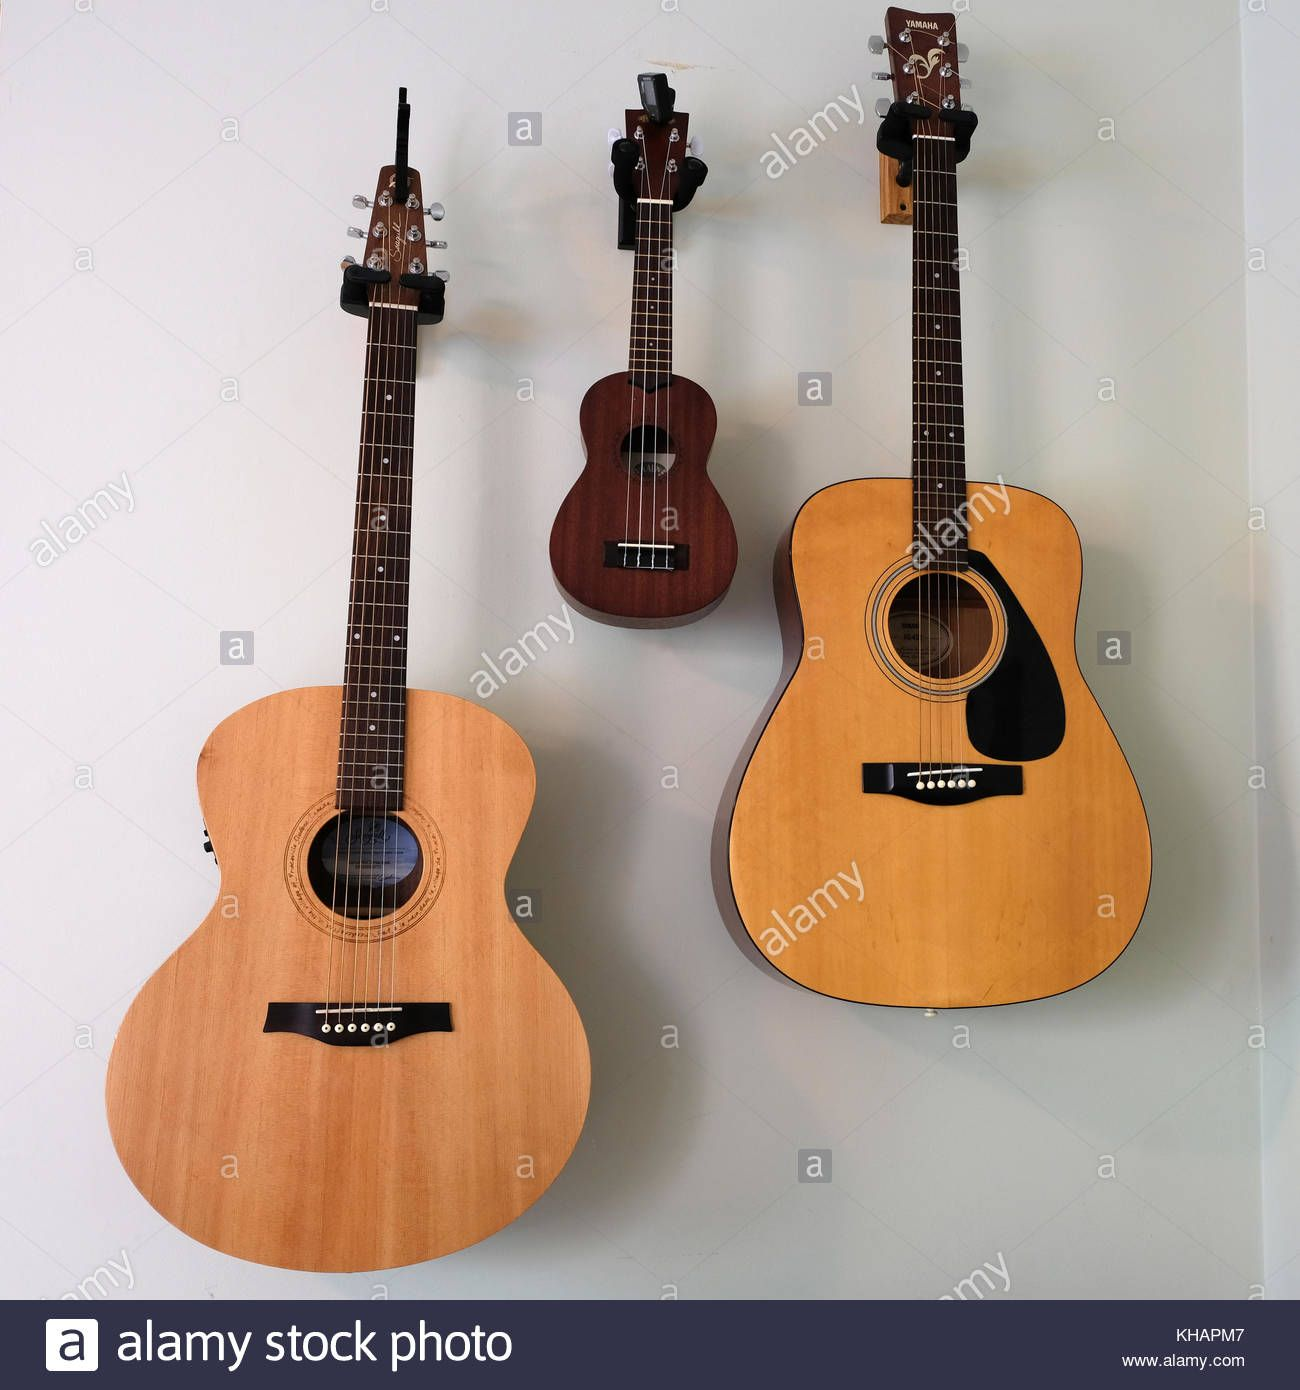 Download This Stock Image Two Guitars And One Banjo Hanging On Wall In Symmetrical Placement Of Musical Instruments Khapm7 Banjo Musical Instruments Guitar